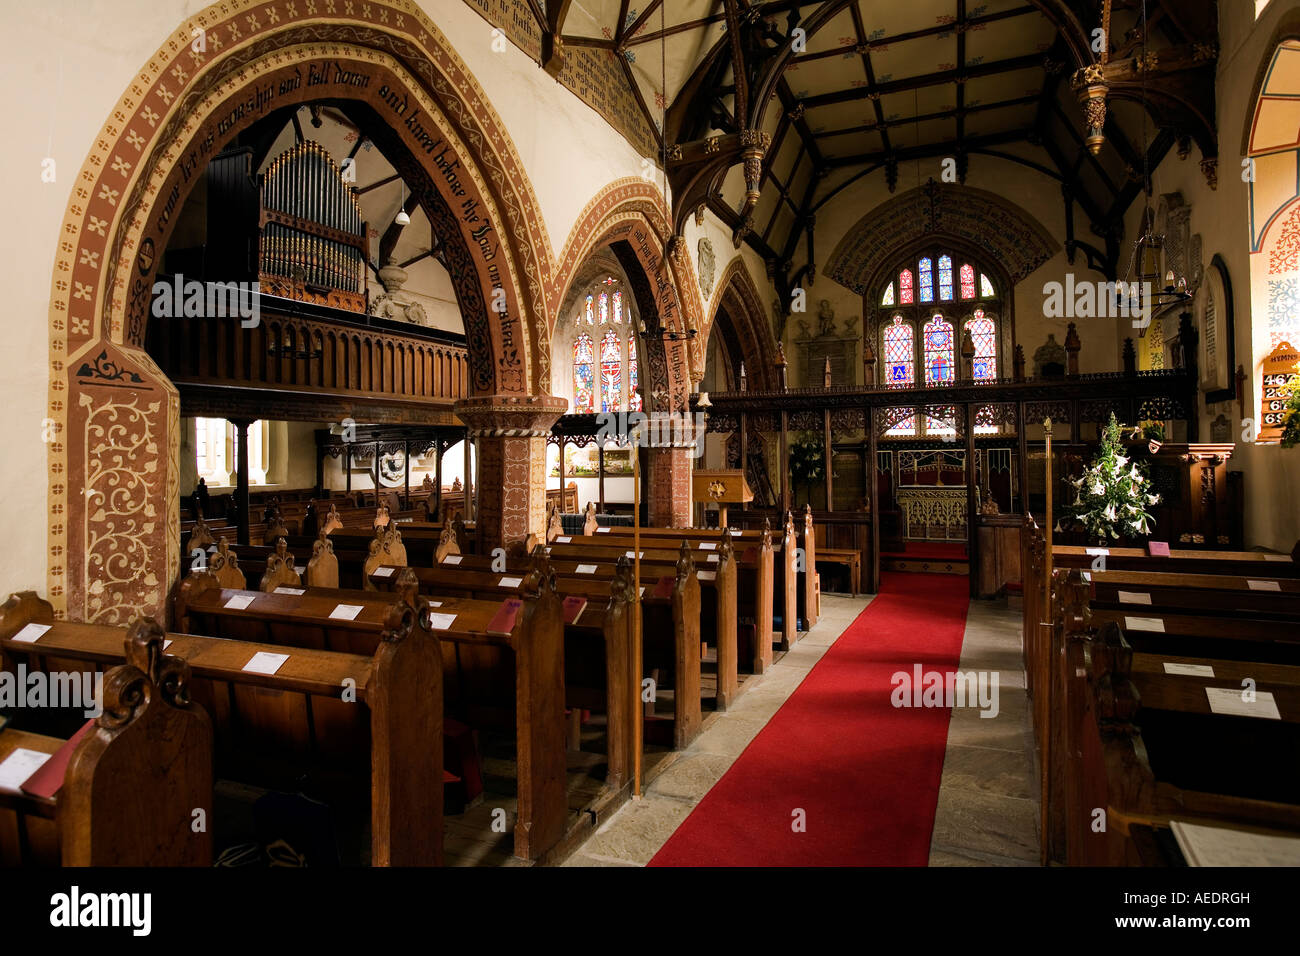 UK Shropshire Llanyblodwel St Michaels Church Gothic revival interior